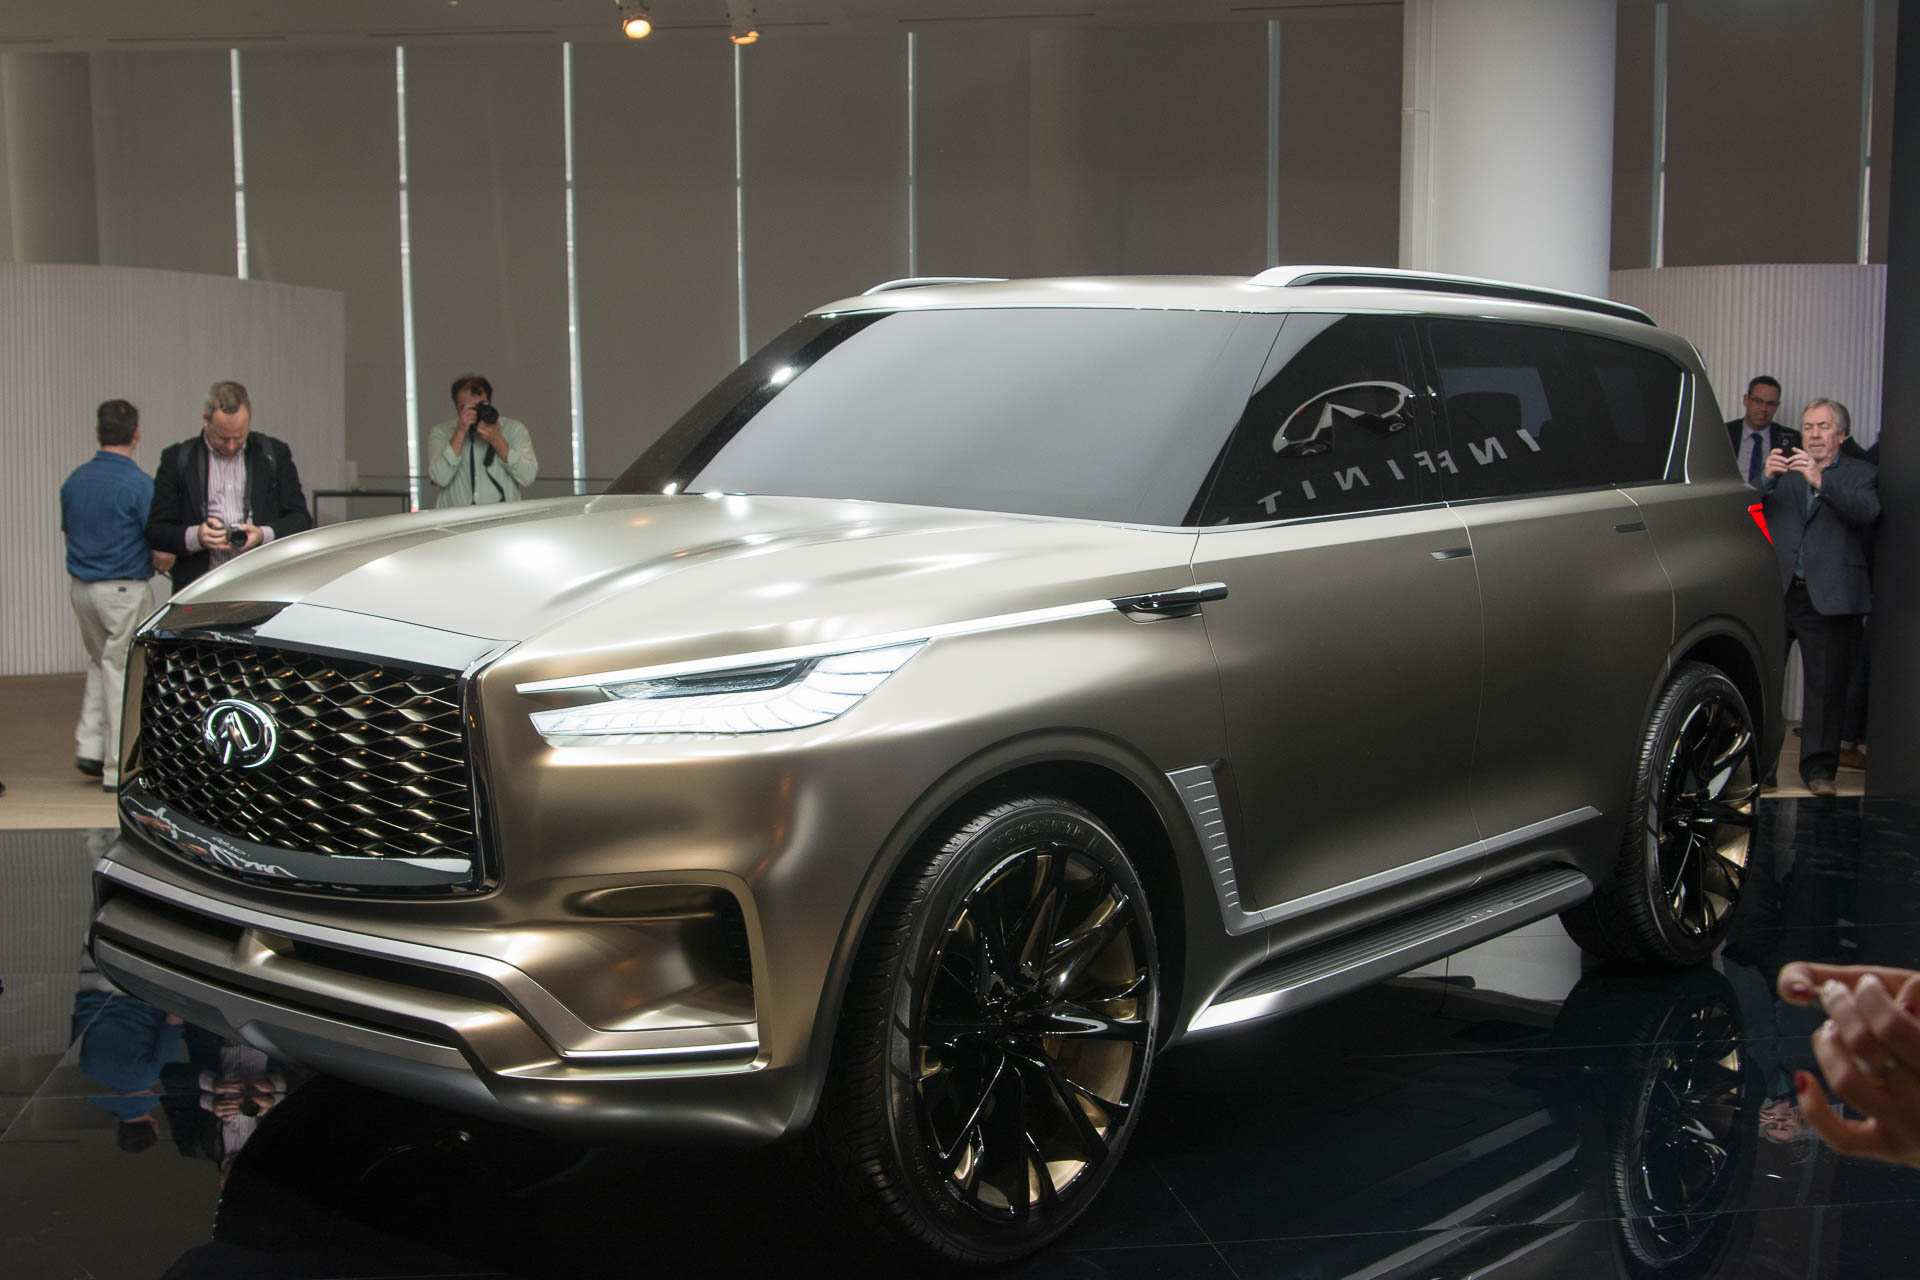 59 Best Review Infiniti Qx80 New Model 2020 Specs and Review by Infiniti Qx80 New Model 2020